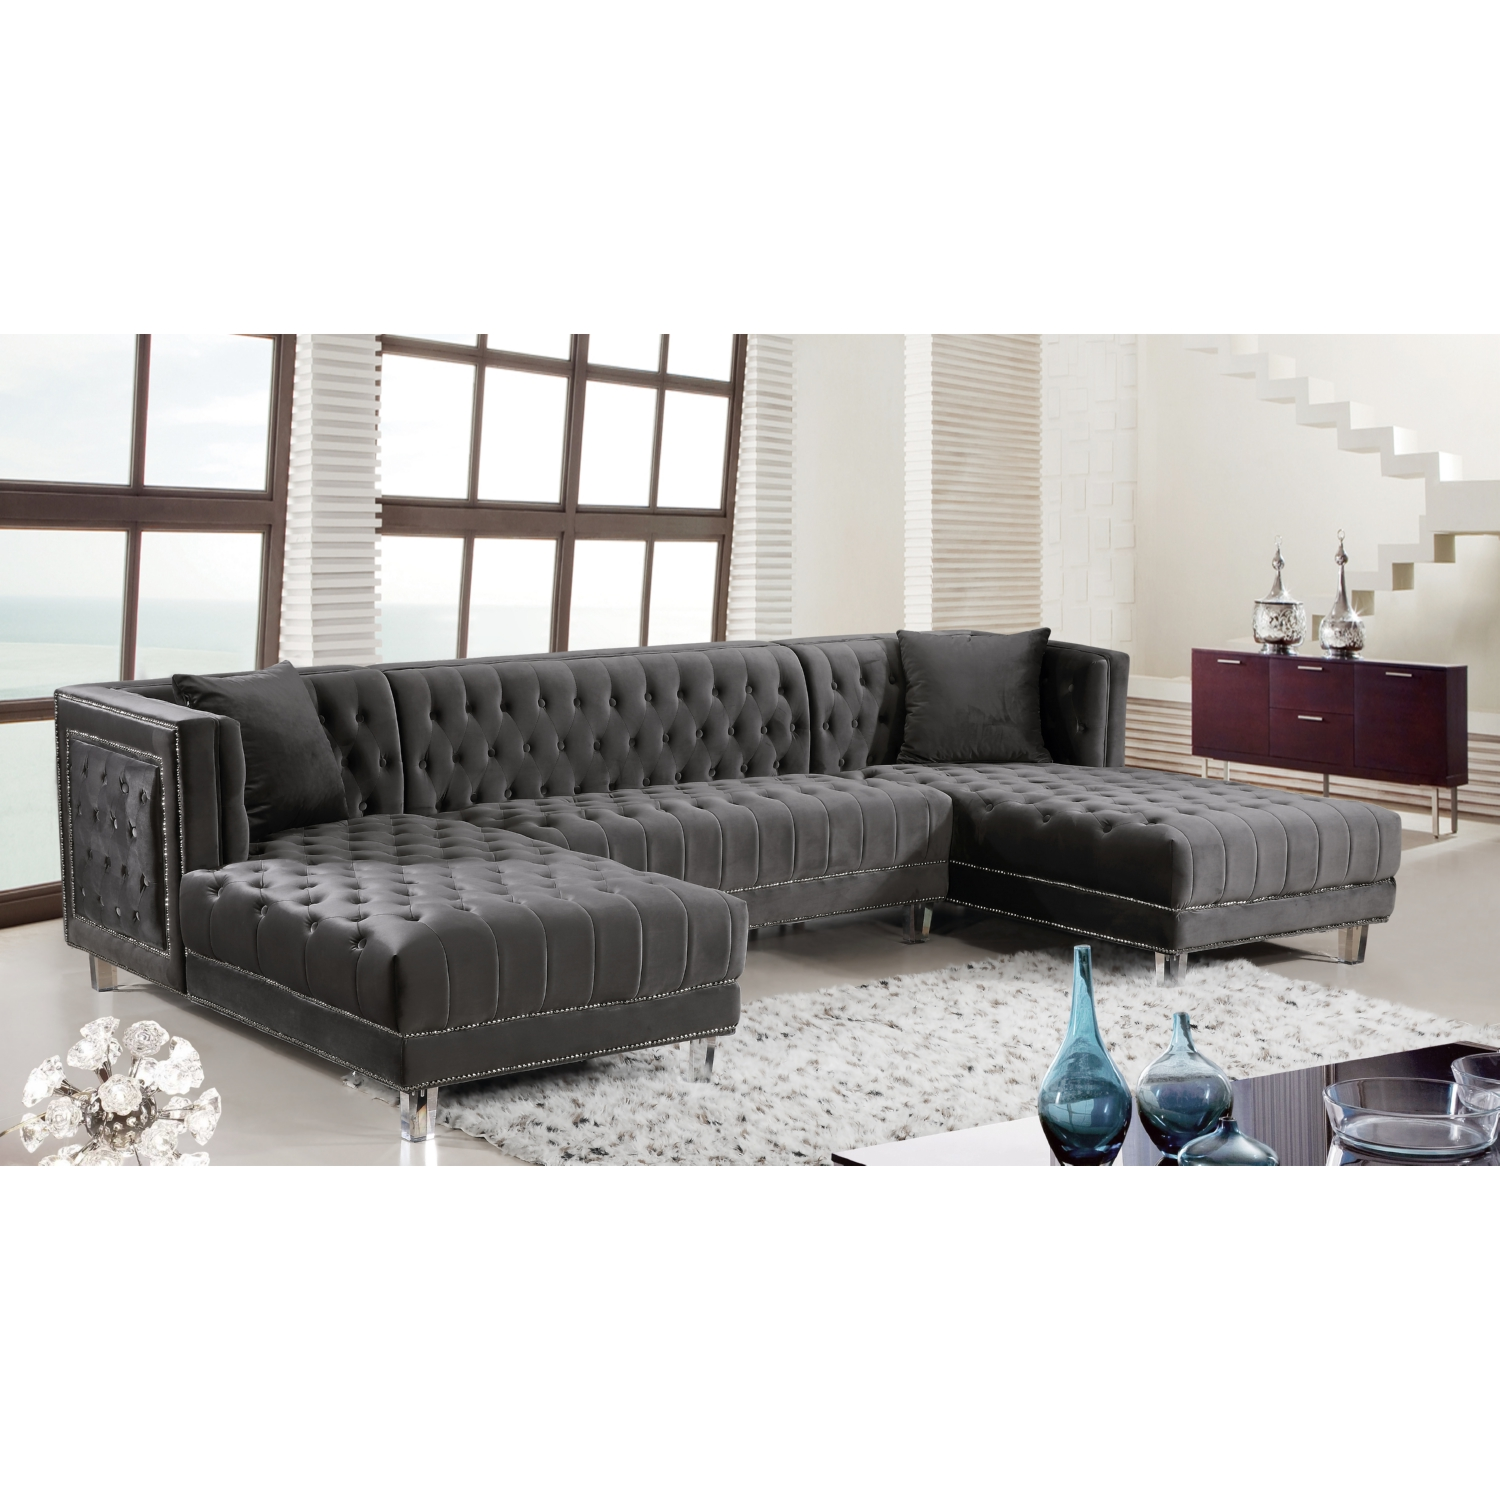 queen co gradschoolfairs sofa nongzi sleek dual about lounge remodel sectional chaise l sleeper wonderful with com sofas microfiber bed